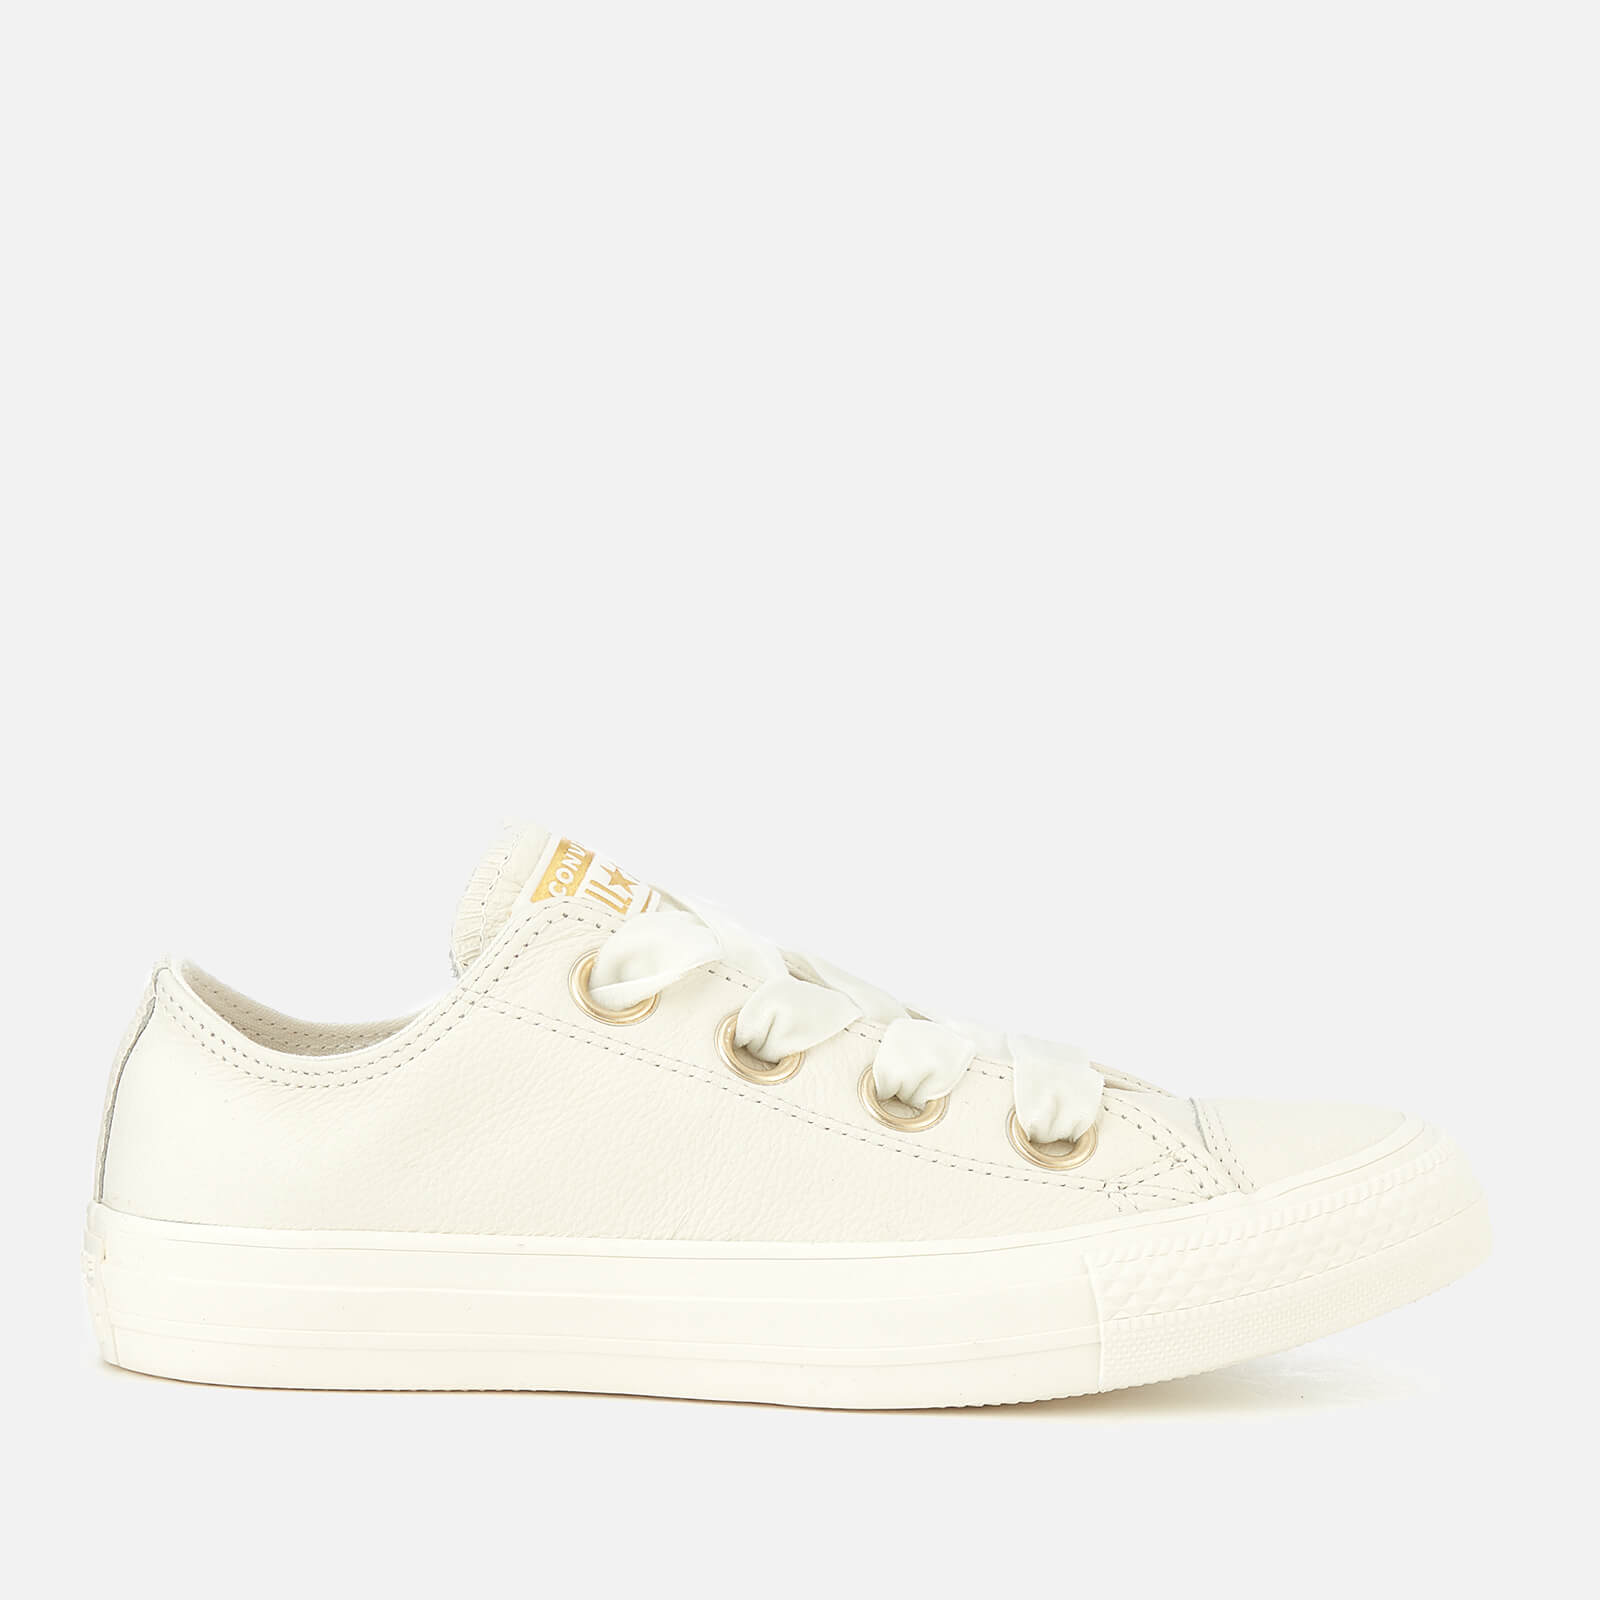 e4a0c88e7fe5 Converse Women s Chuck Taylor All Star Big Eyelets Ox Trainers - Vintage  White Womens Footwear